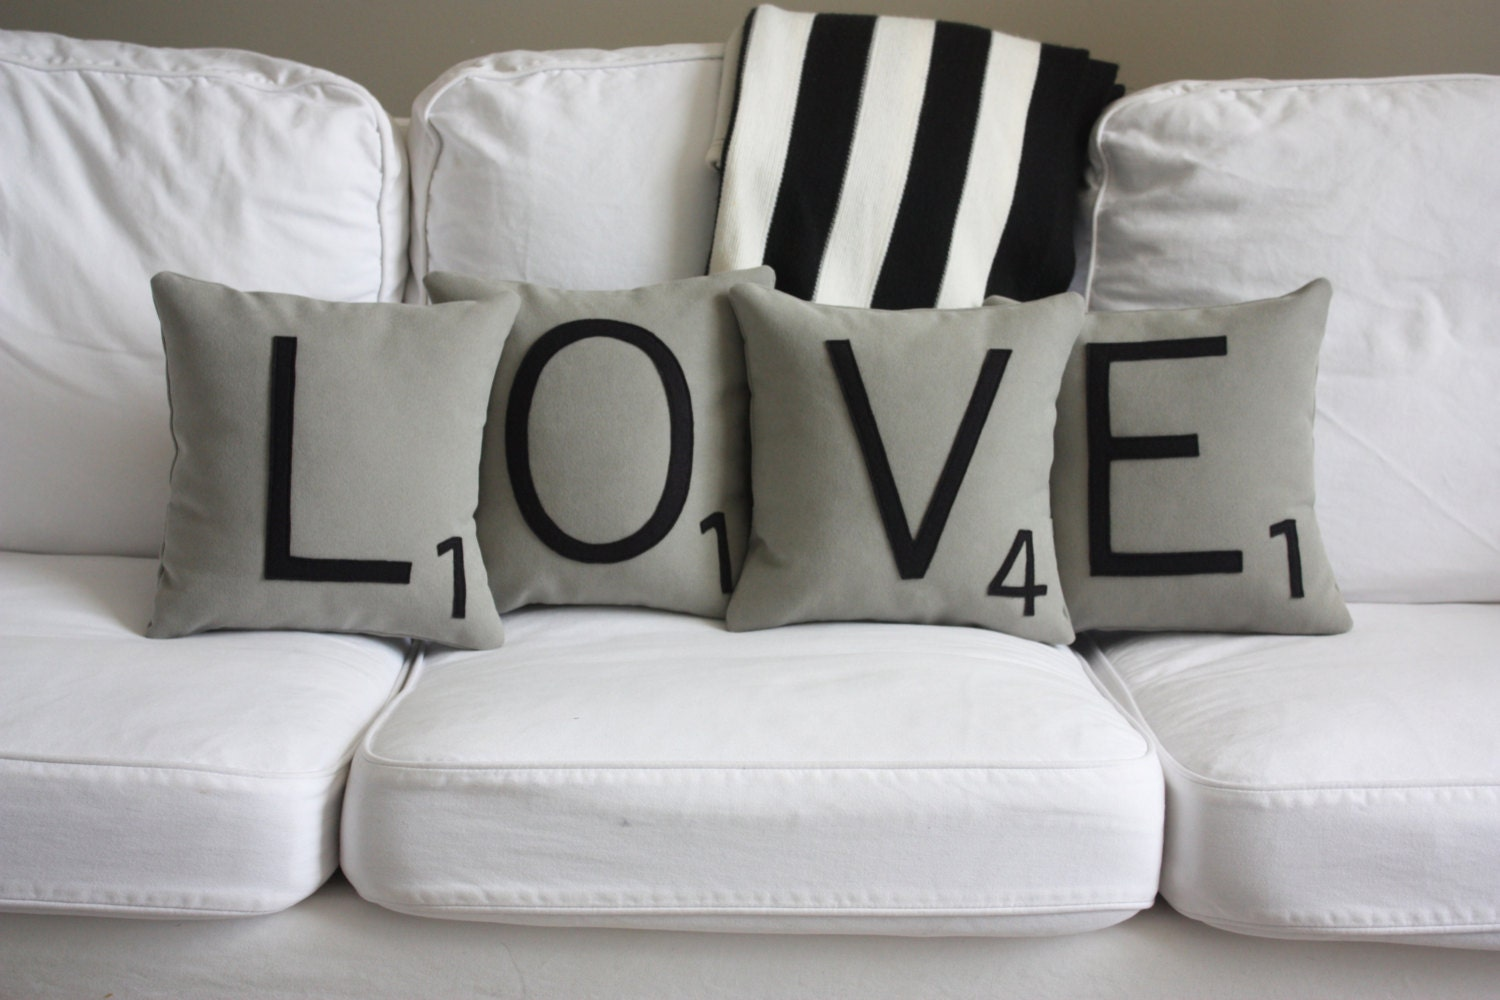 Love scrabble pillows inserts included scrabble tile zoom dailygadgetfo Image collections